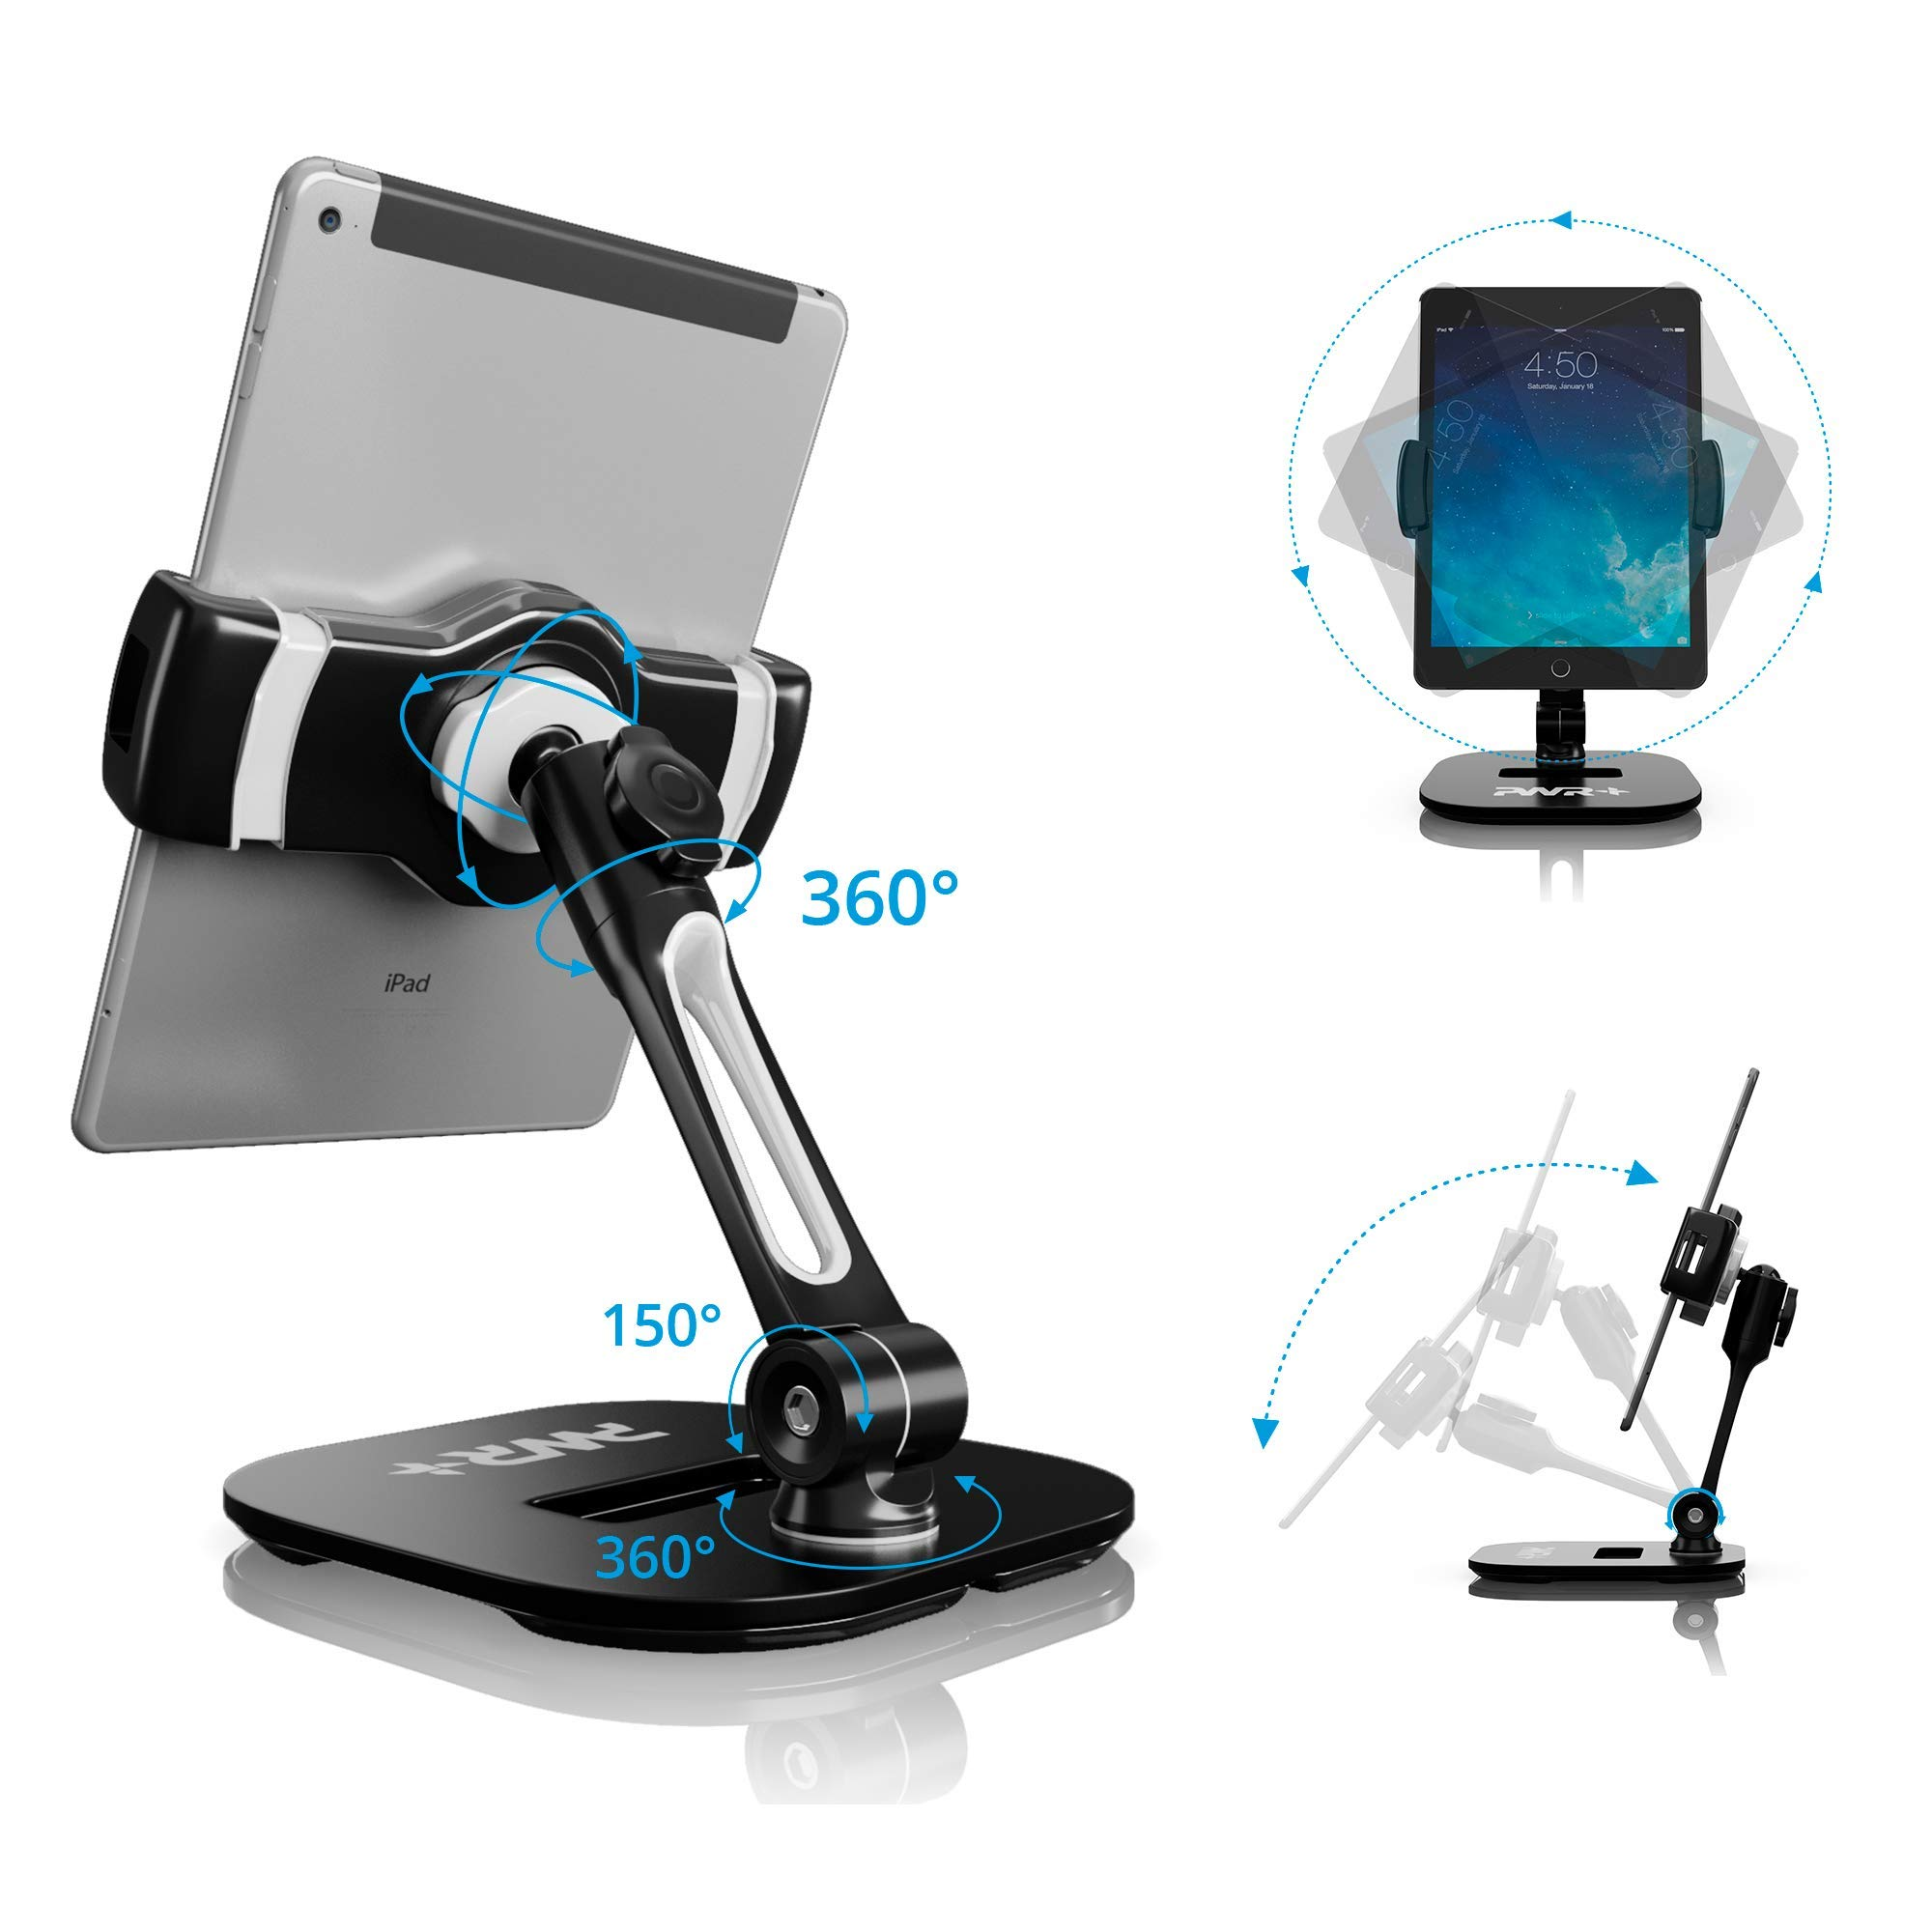 Tablet Stands and Holders Adjustable: Pwr Stylish Tablet Cell Phone Holder 360 degree Swivel Angle Rotation for 4-11'' Tab Phone iPad Samsung Galaxy Perfect POS Kitchen Bedside Office Table Reception by PWR+ (Image #2)